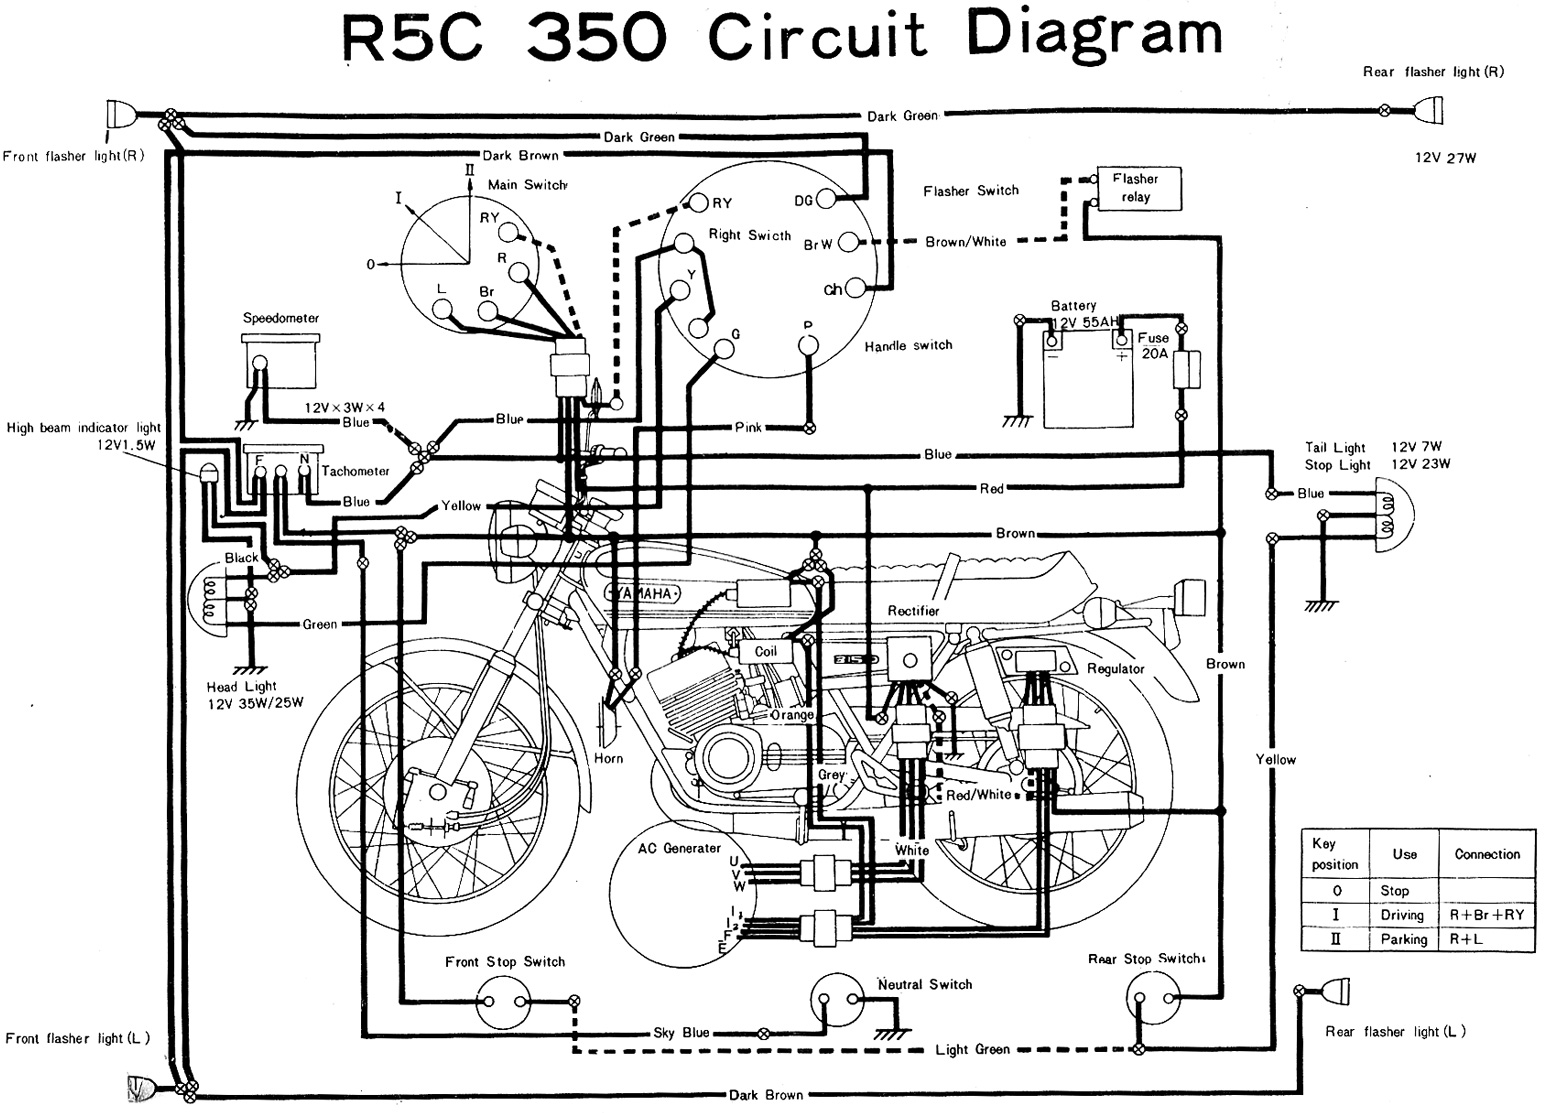 Yamaha R5C 350 Electrical Wiring Diagram1 motorcycle wiring diagrams electrical circuit wiring diagram at reclaimingppi.co